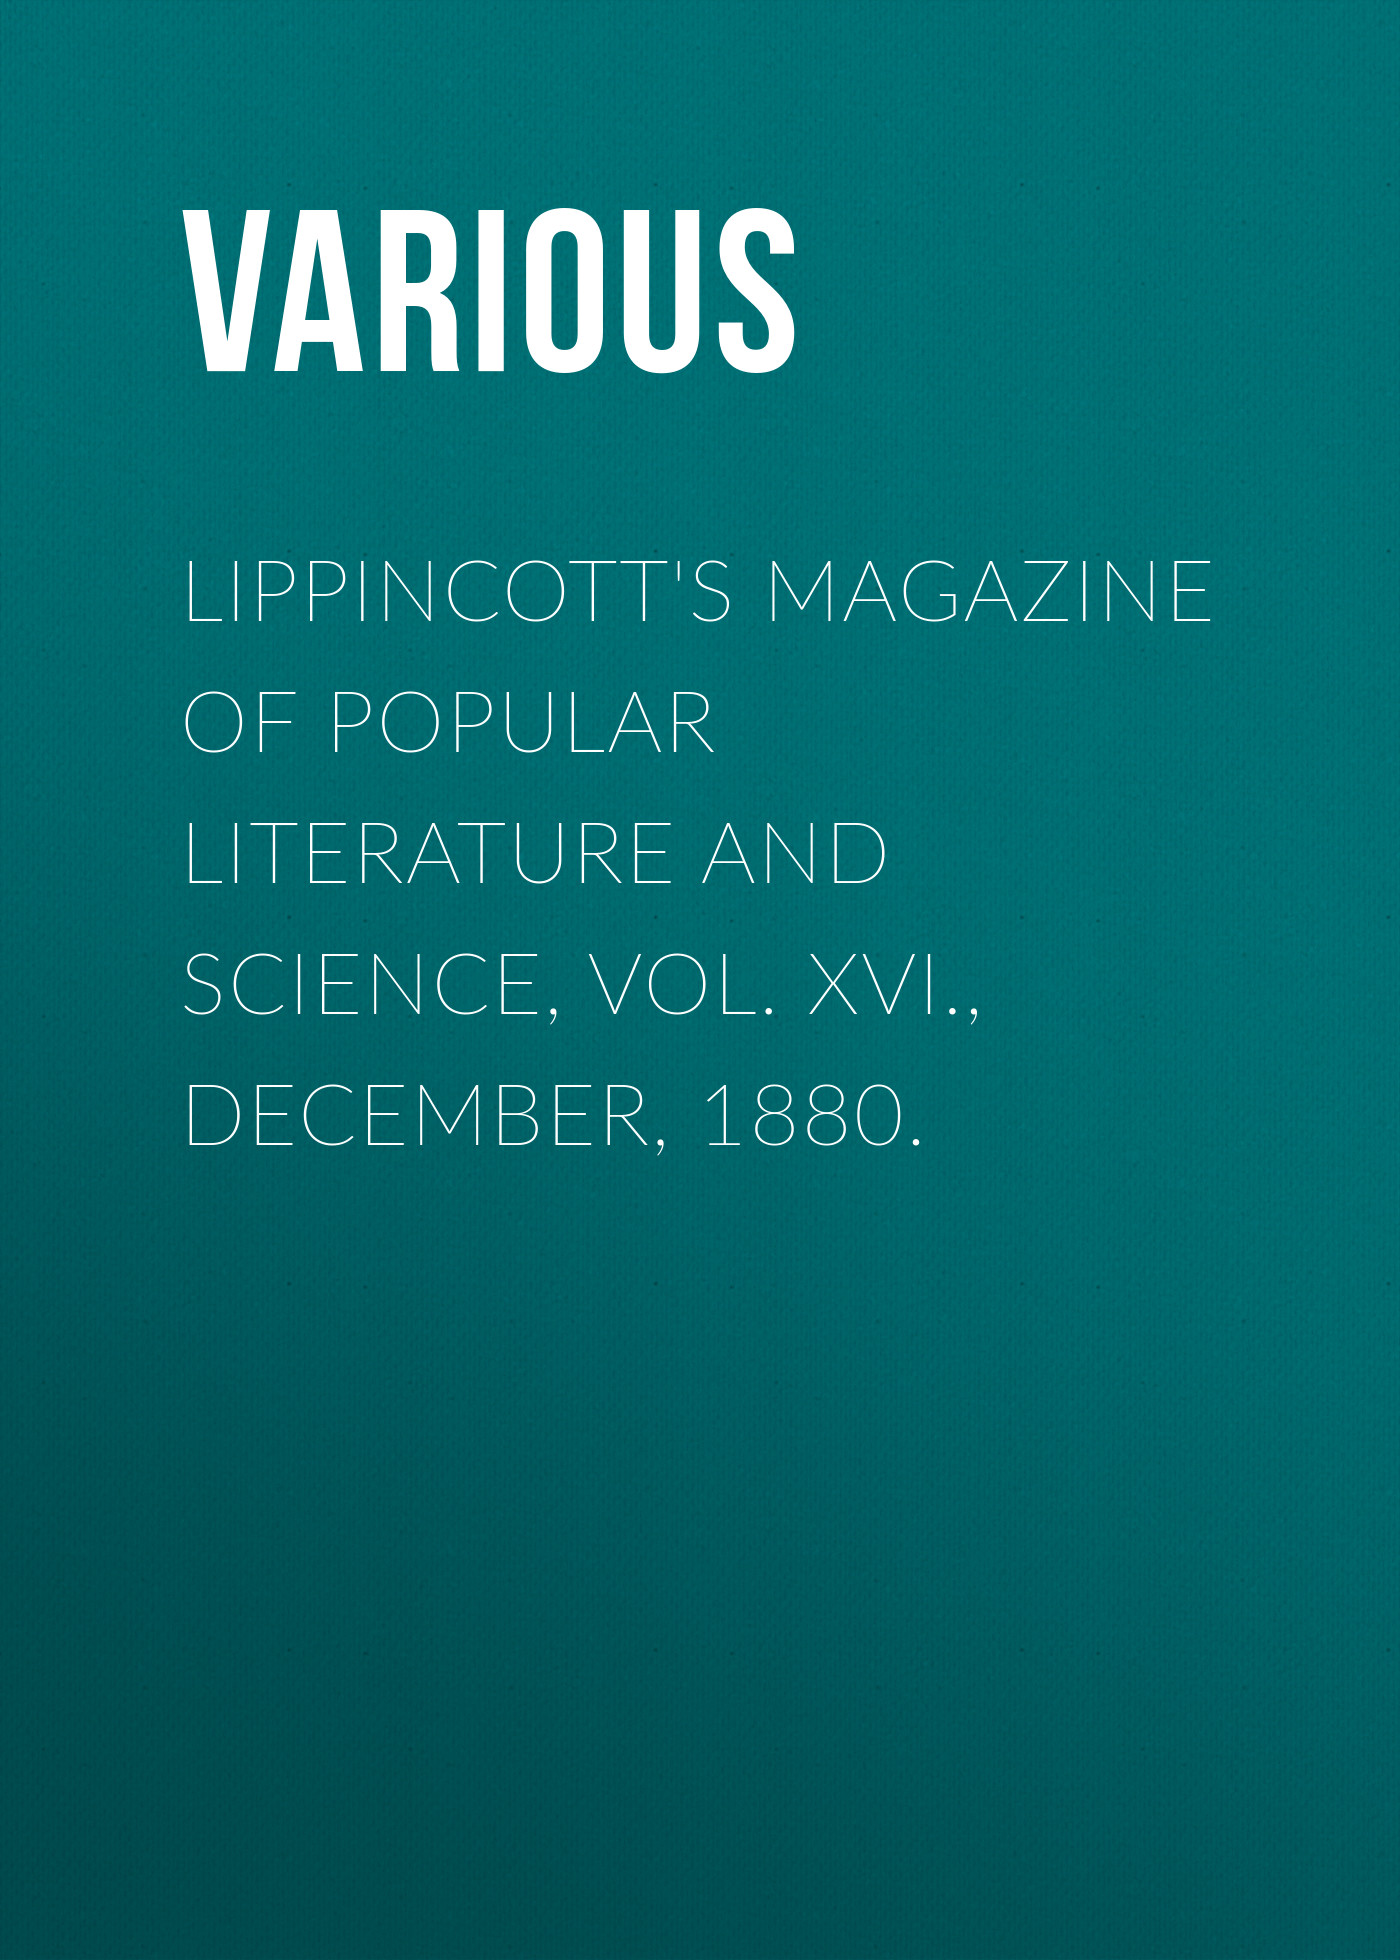 Various Lippincott's Magazine of Popular Literature and Science, Vol. XVI., December, 1880. ec weird science vol 1